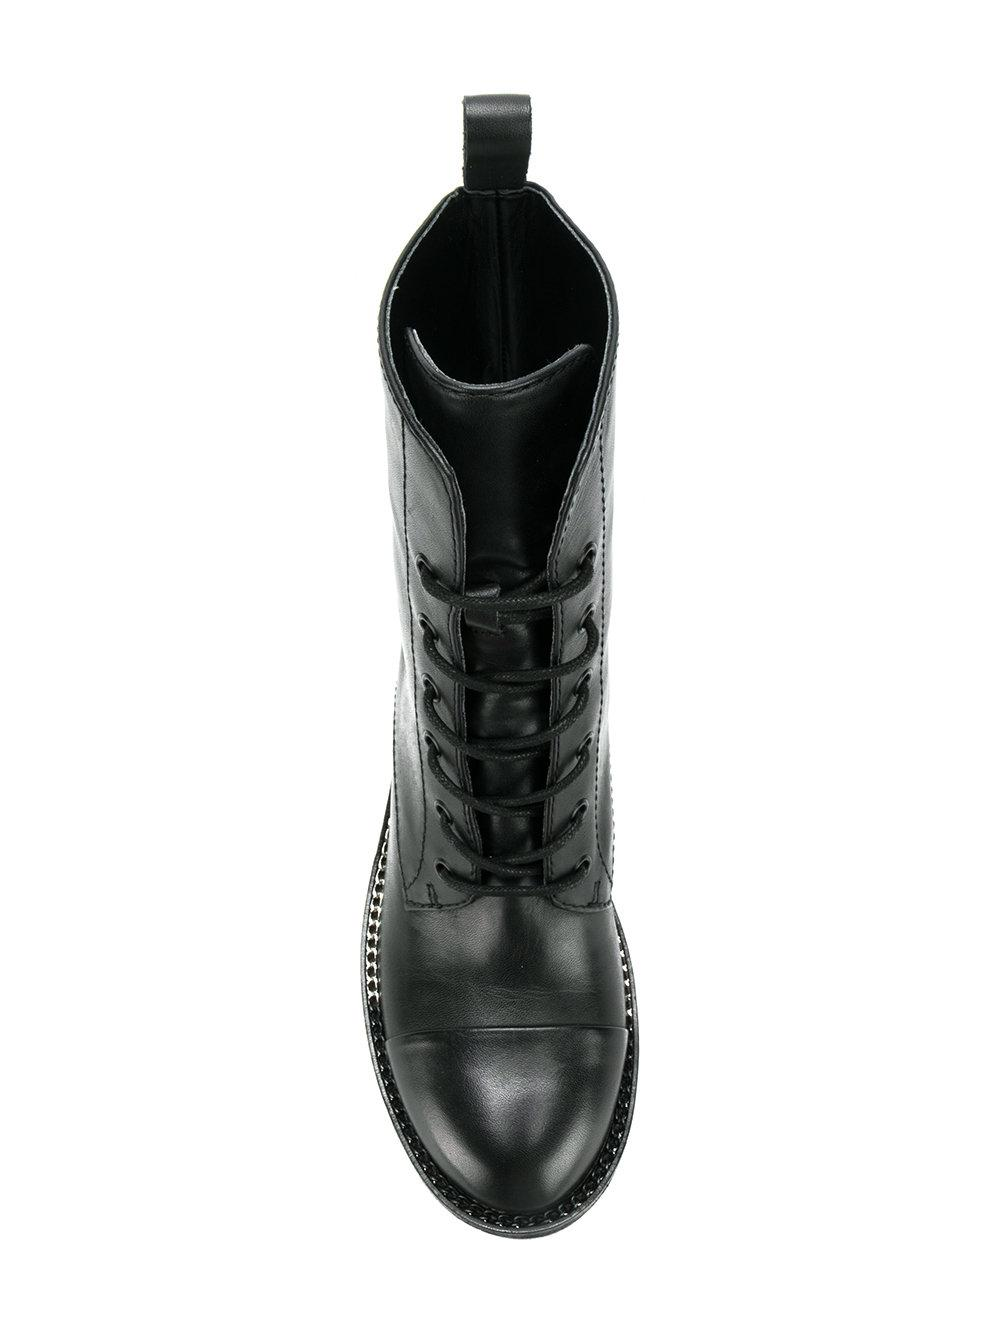 Kendall + Kylie Leather Park Biker Boots in Black